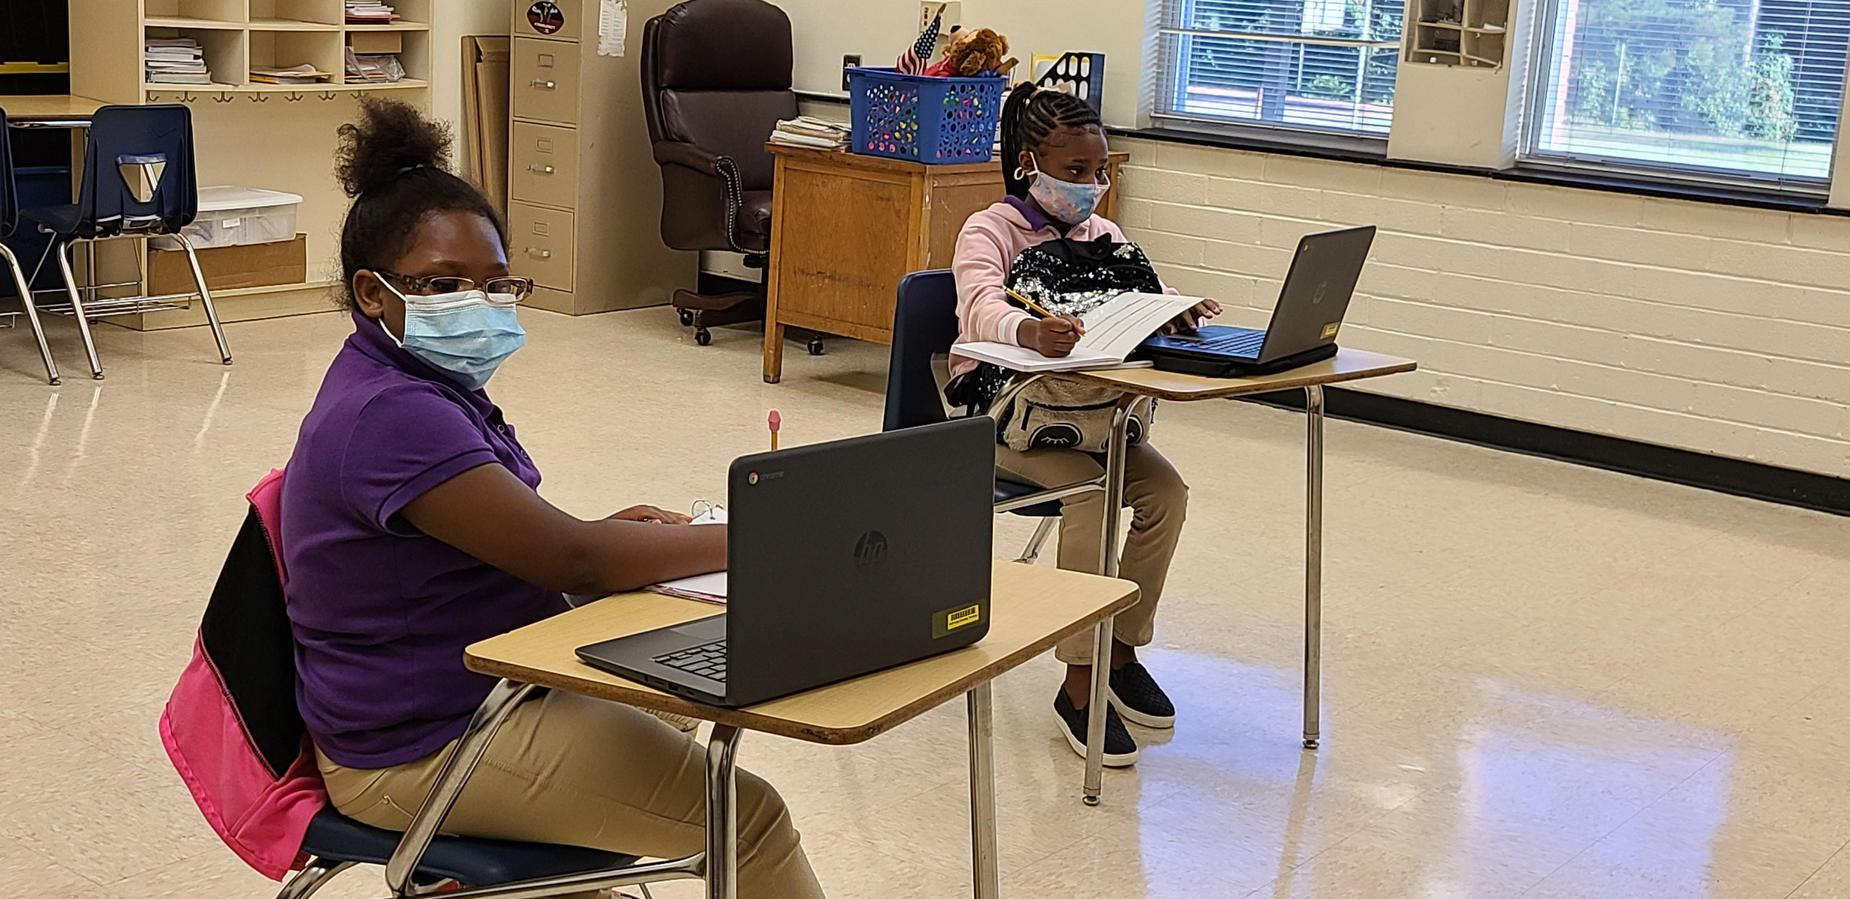 4th graders in the classroom.